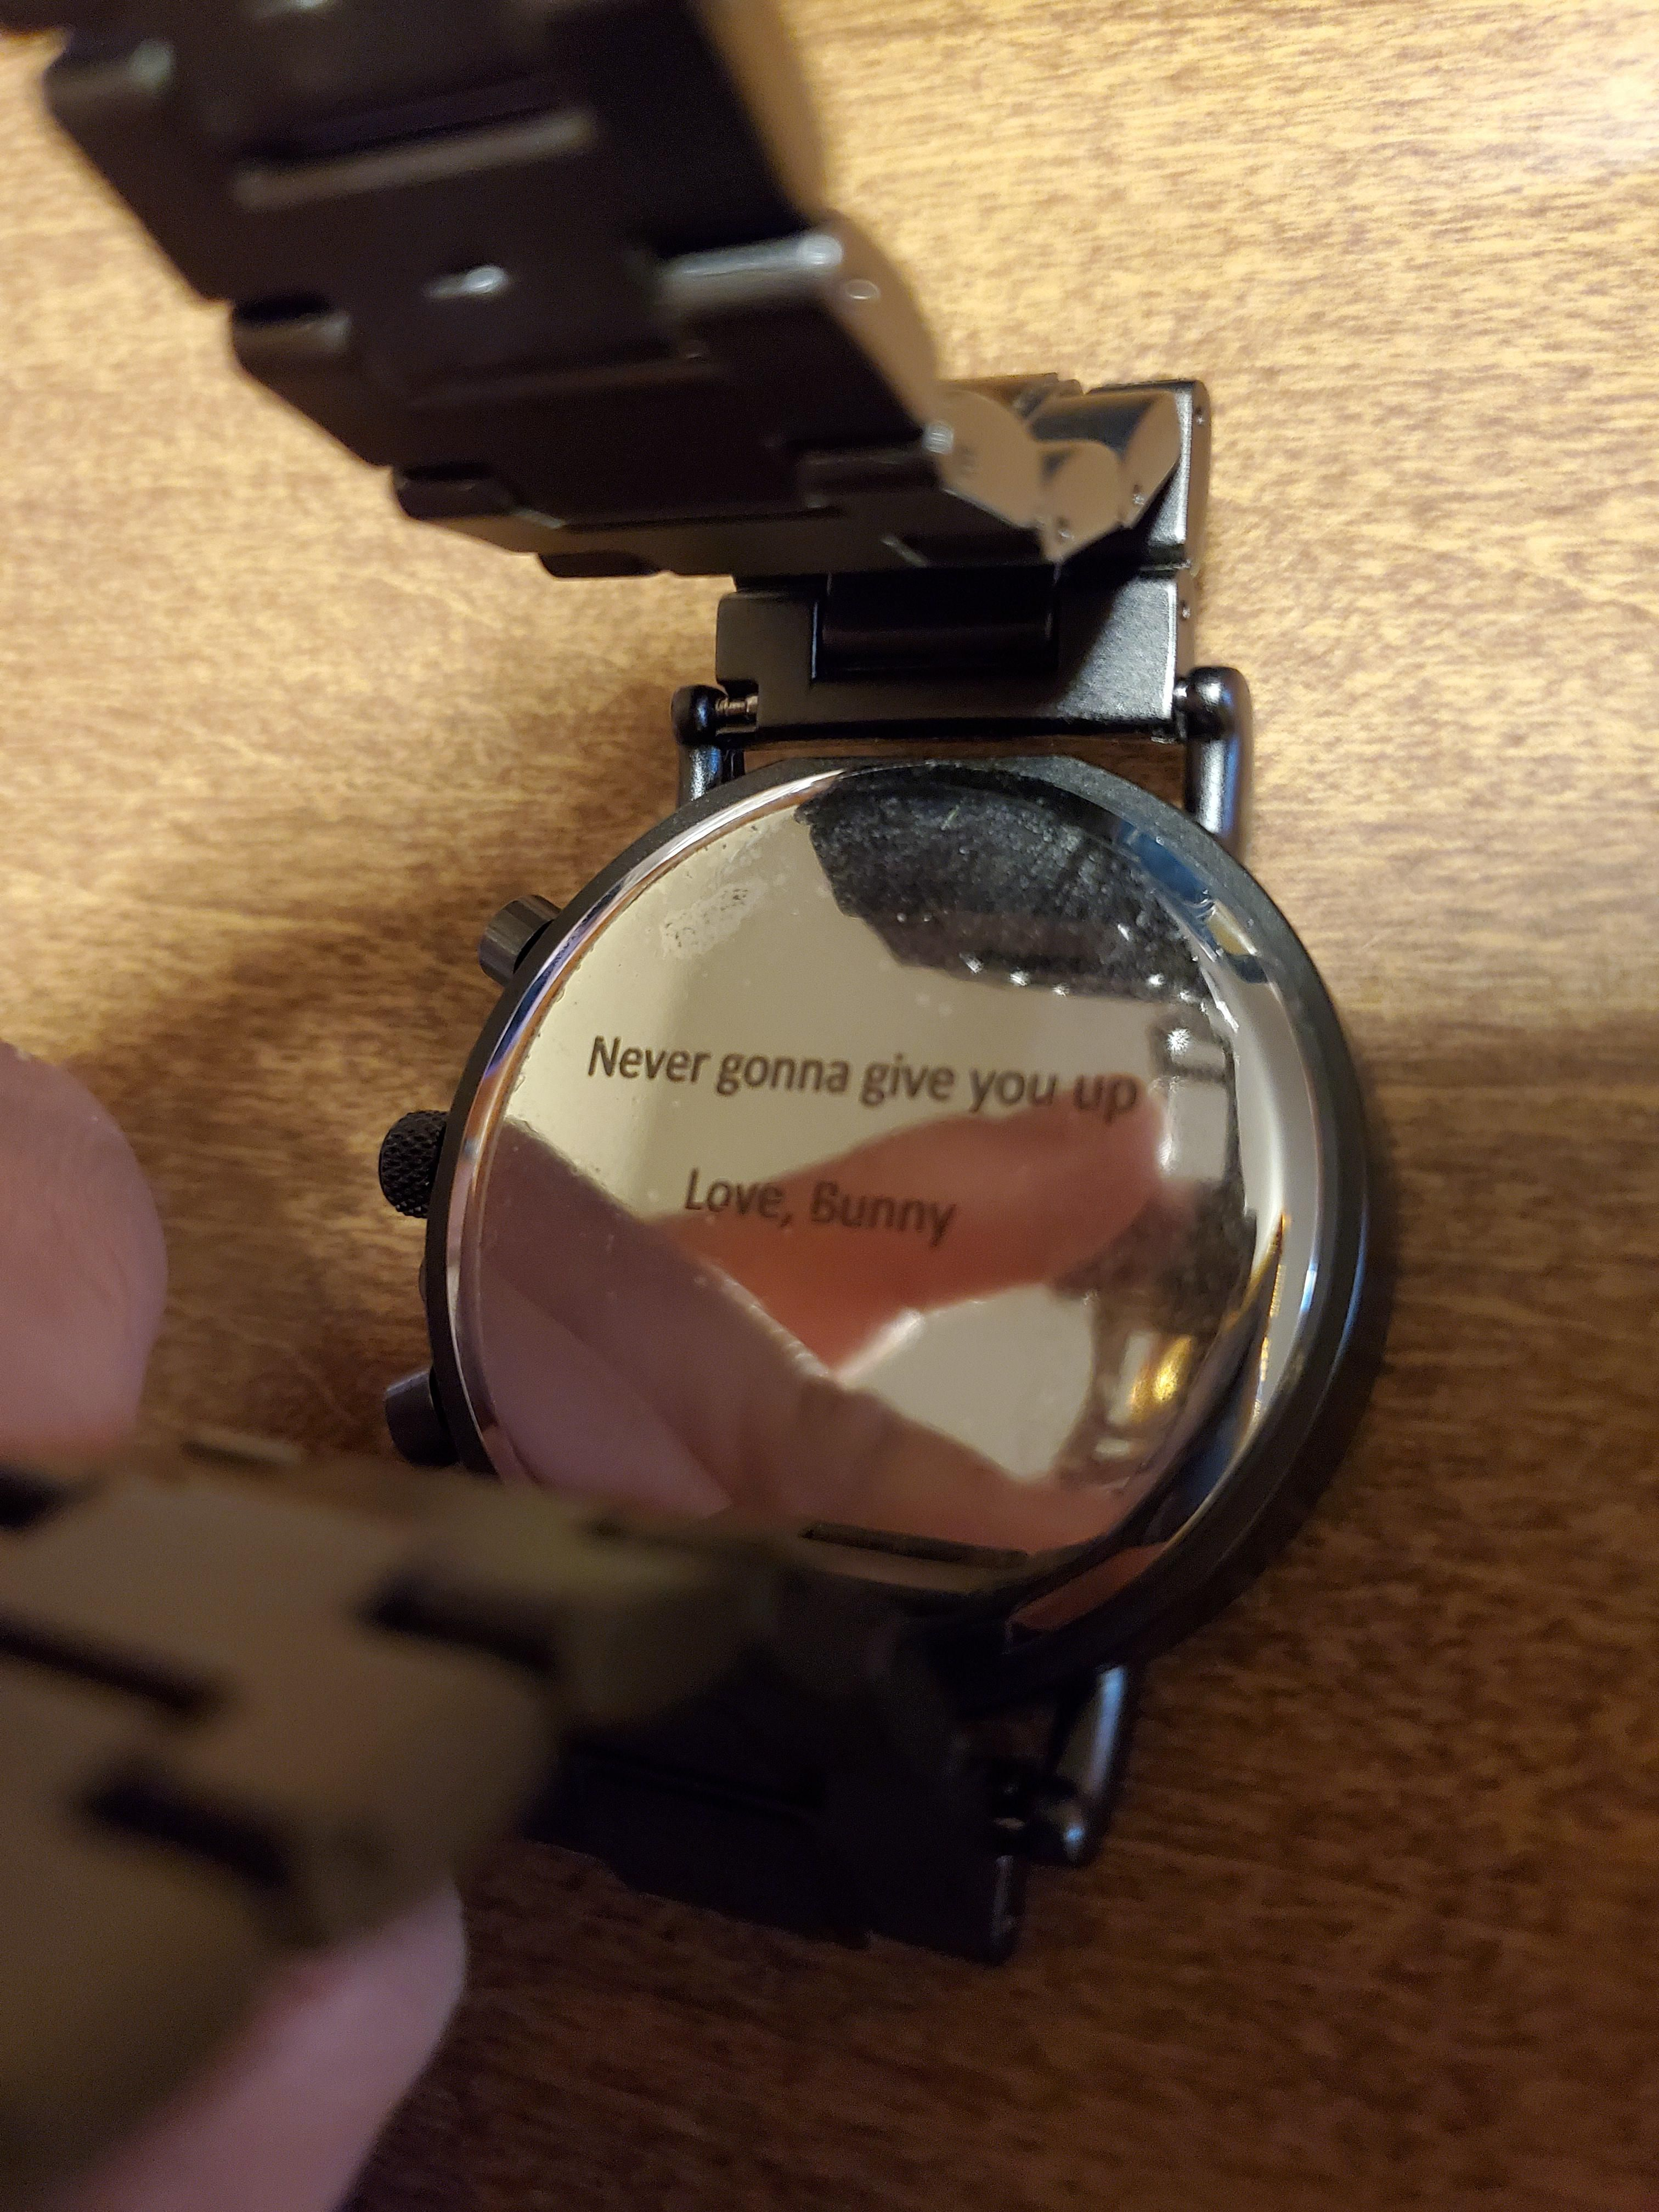 For my anniversary my wife got me a watch I really wanted, it was not until later that I realized that she got it engraved. If a lifetime of rickrolls doesn't say I love you, I don't know what does.